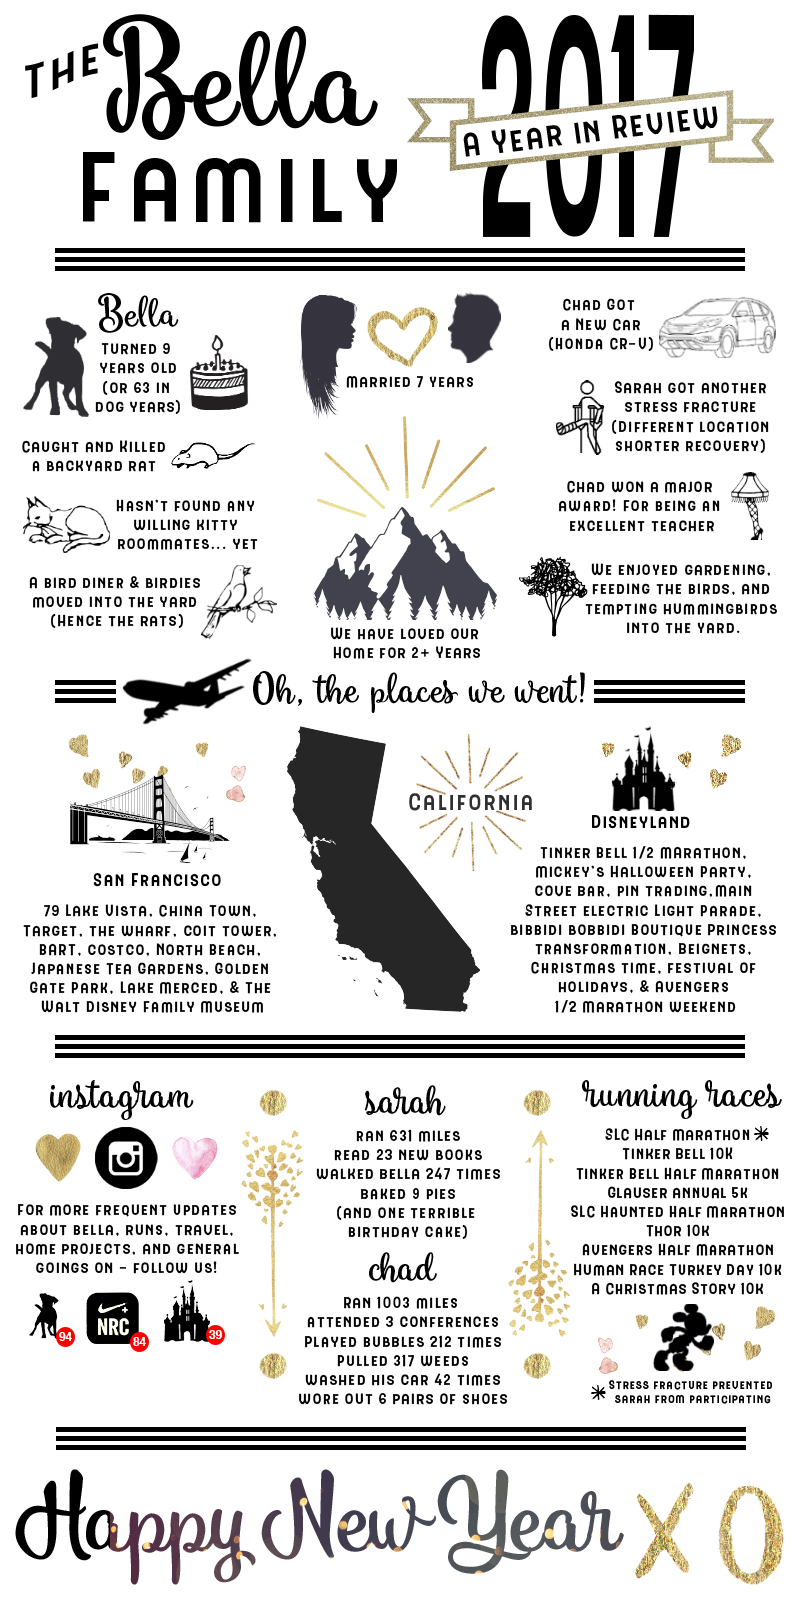 2017 Year in Review Infographic